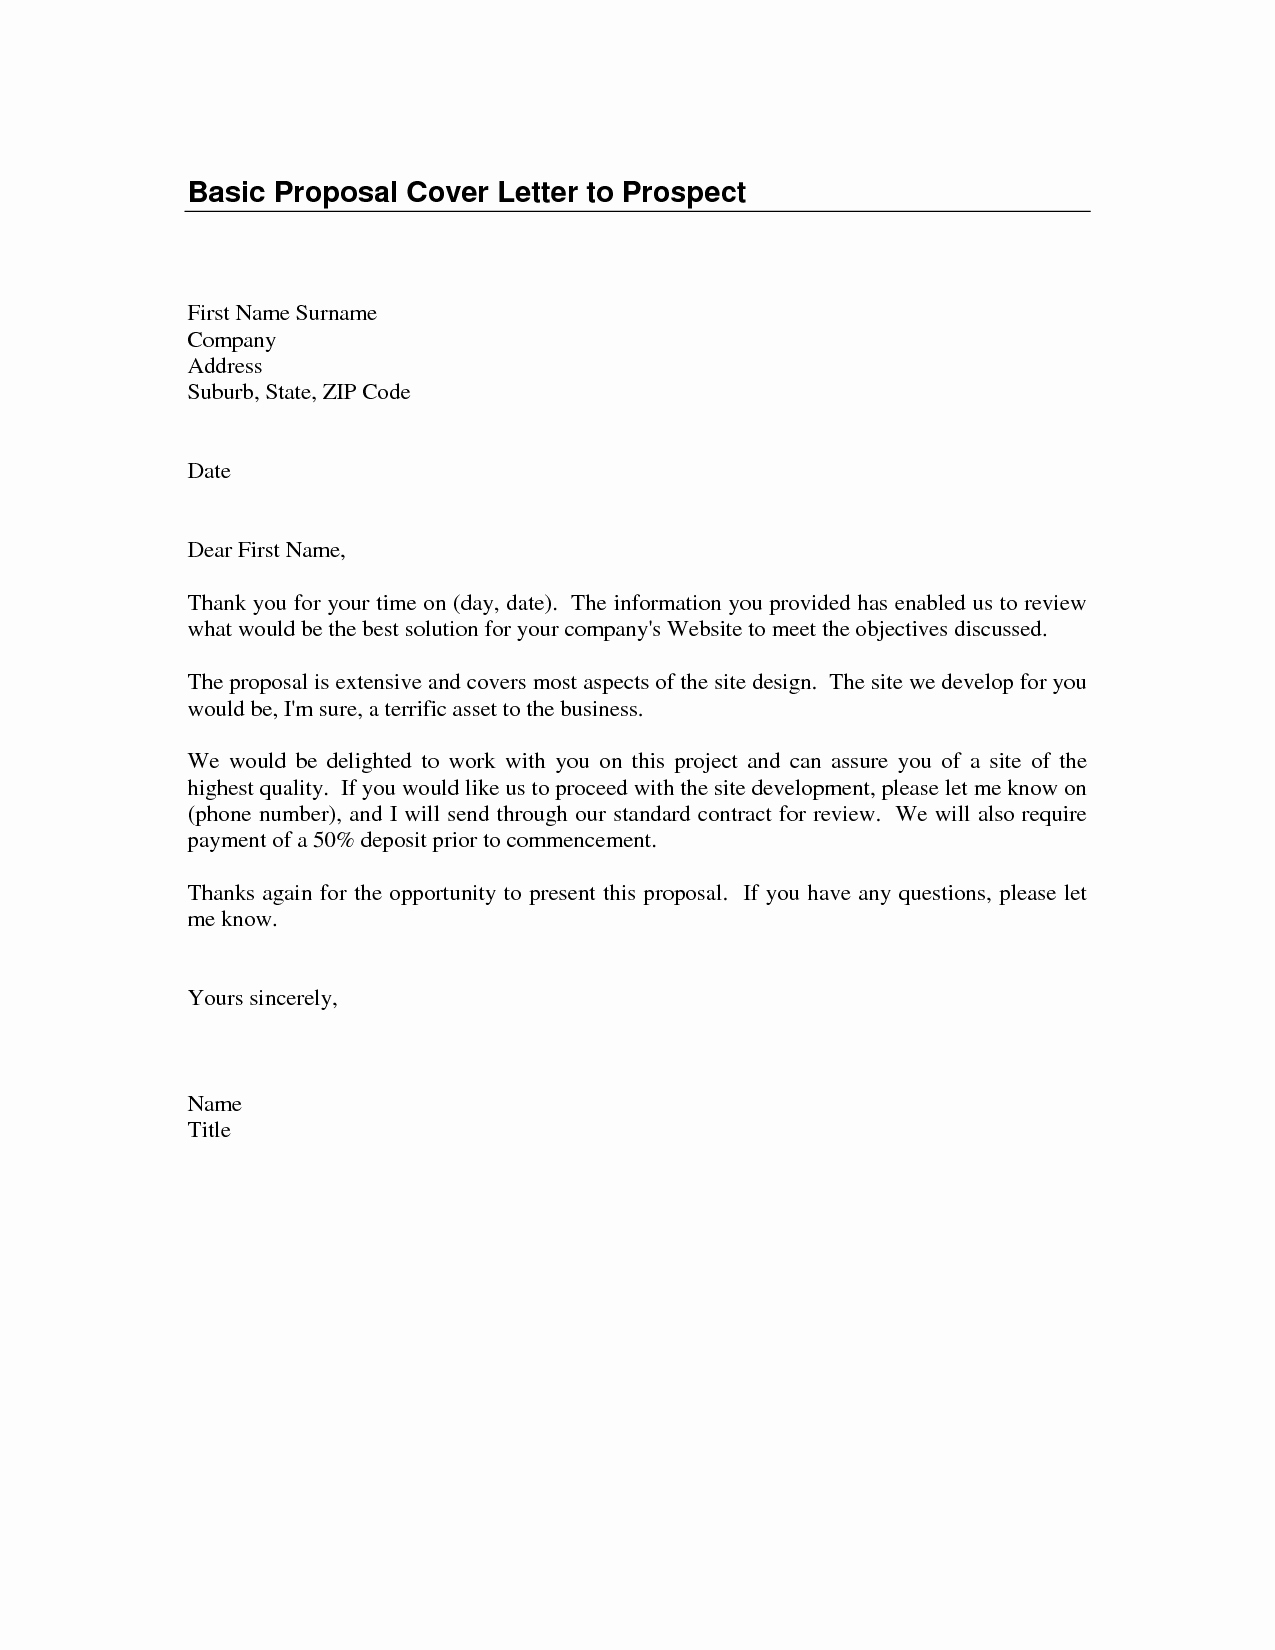 Sample Cover Letter Free Luxury All Cover Letter Samples for Professionals